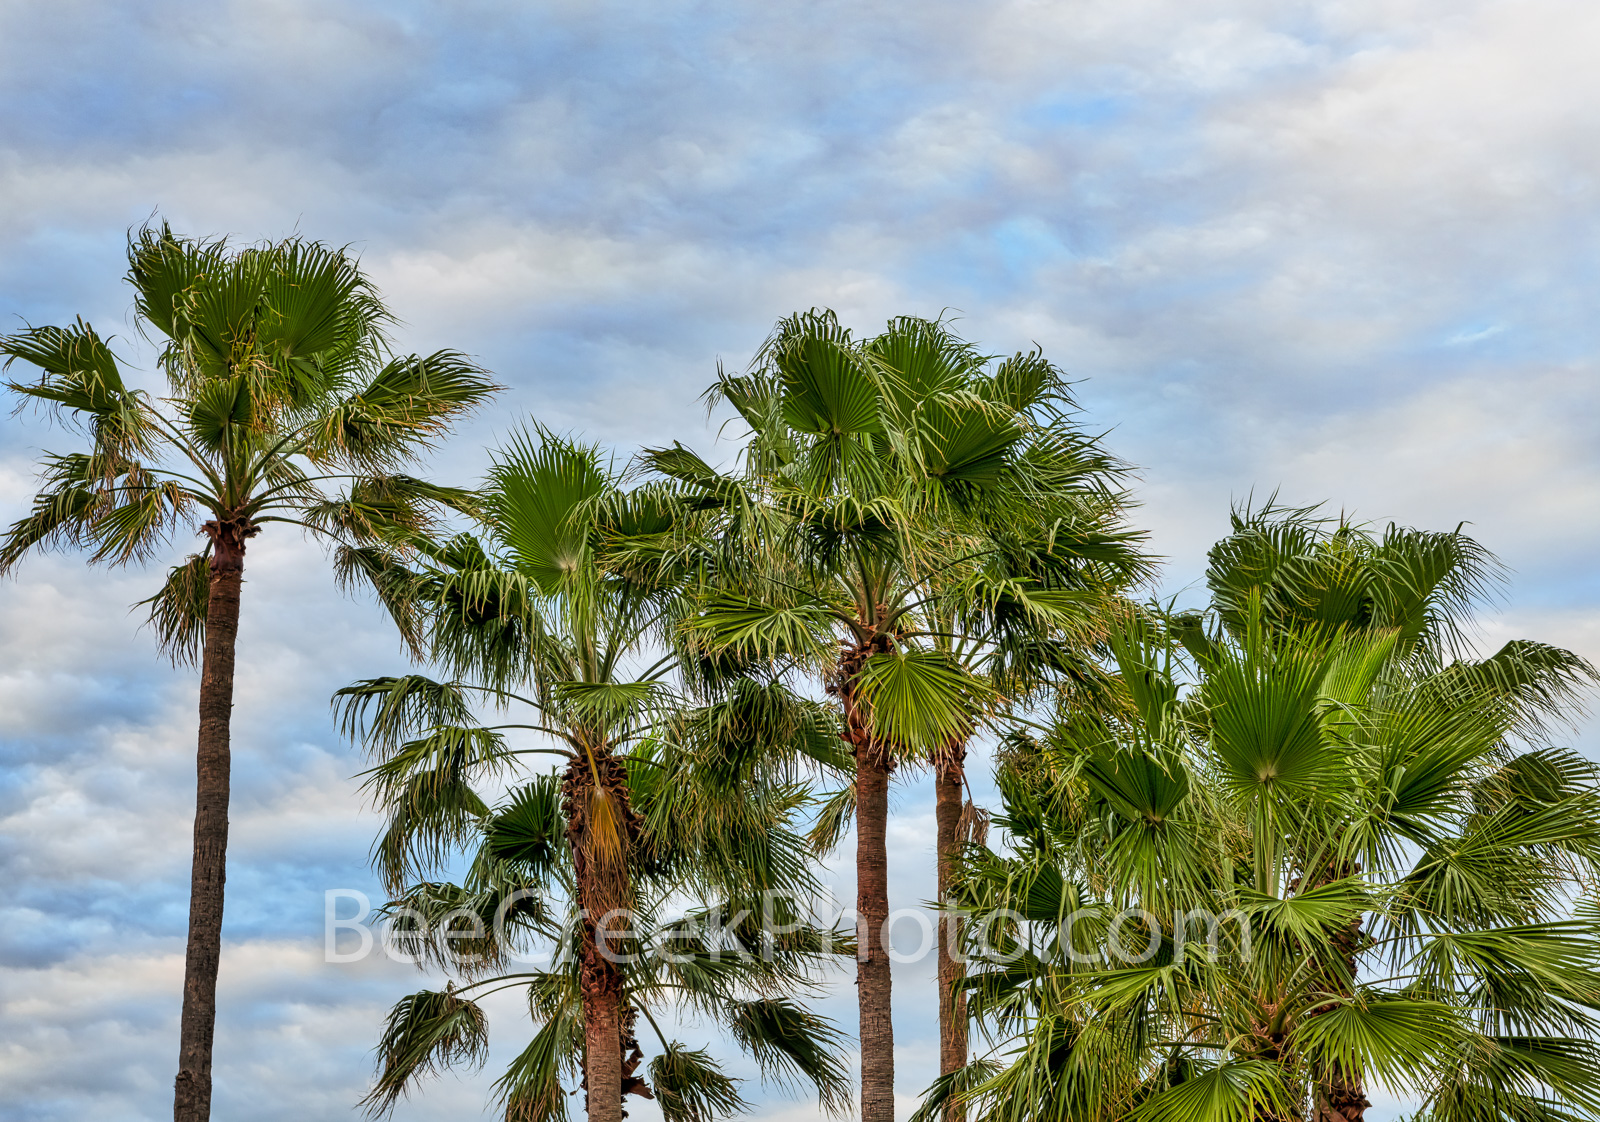 Island Palm Trees - These island palm trees were captured with these nice cloudy skies behind them. Palms trees at the beach...